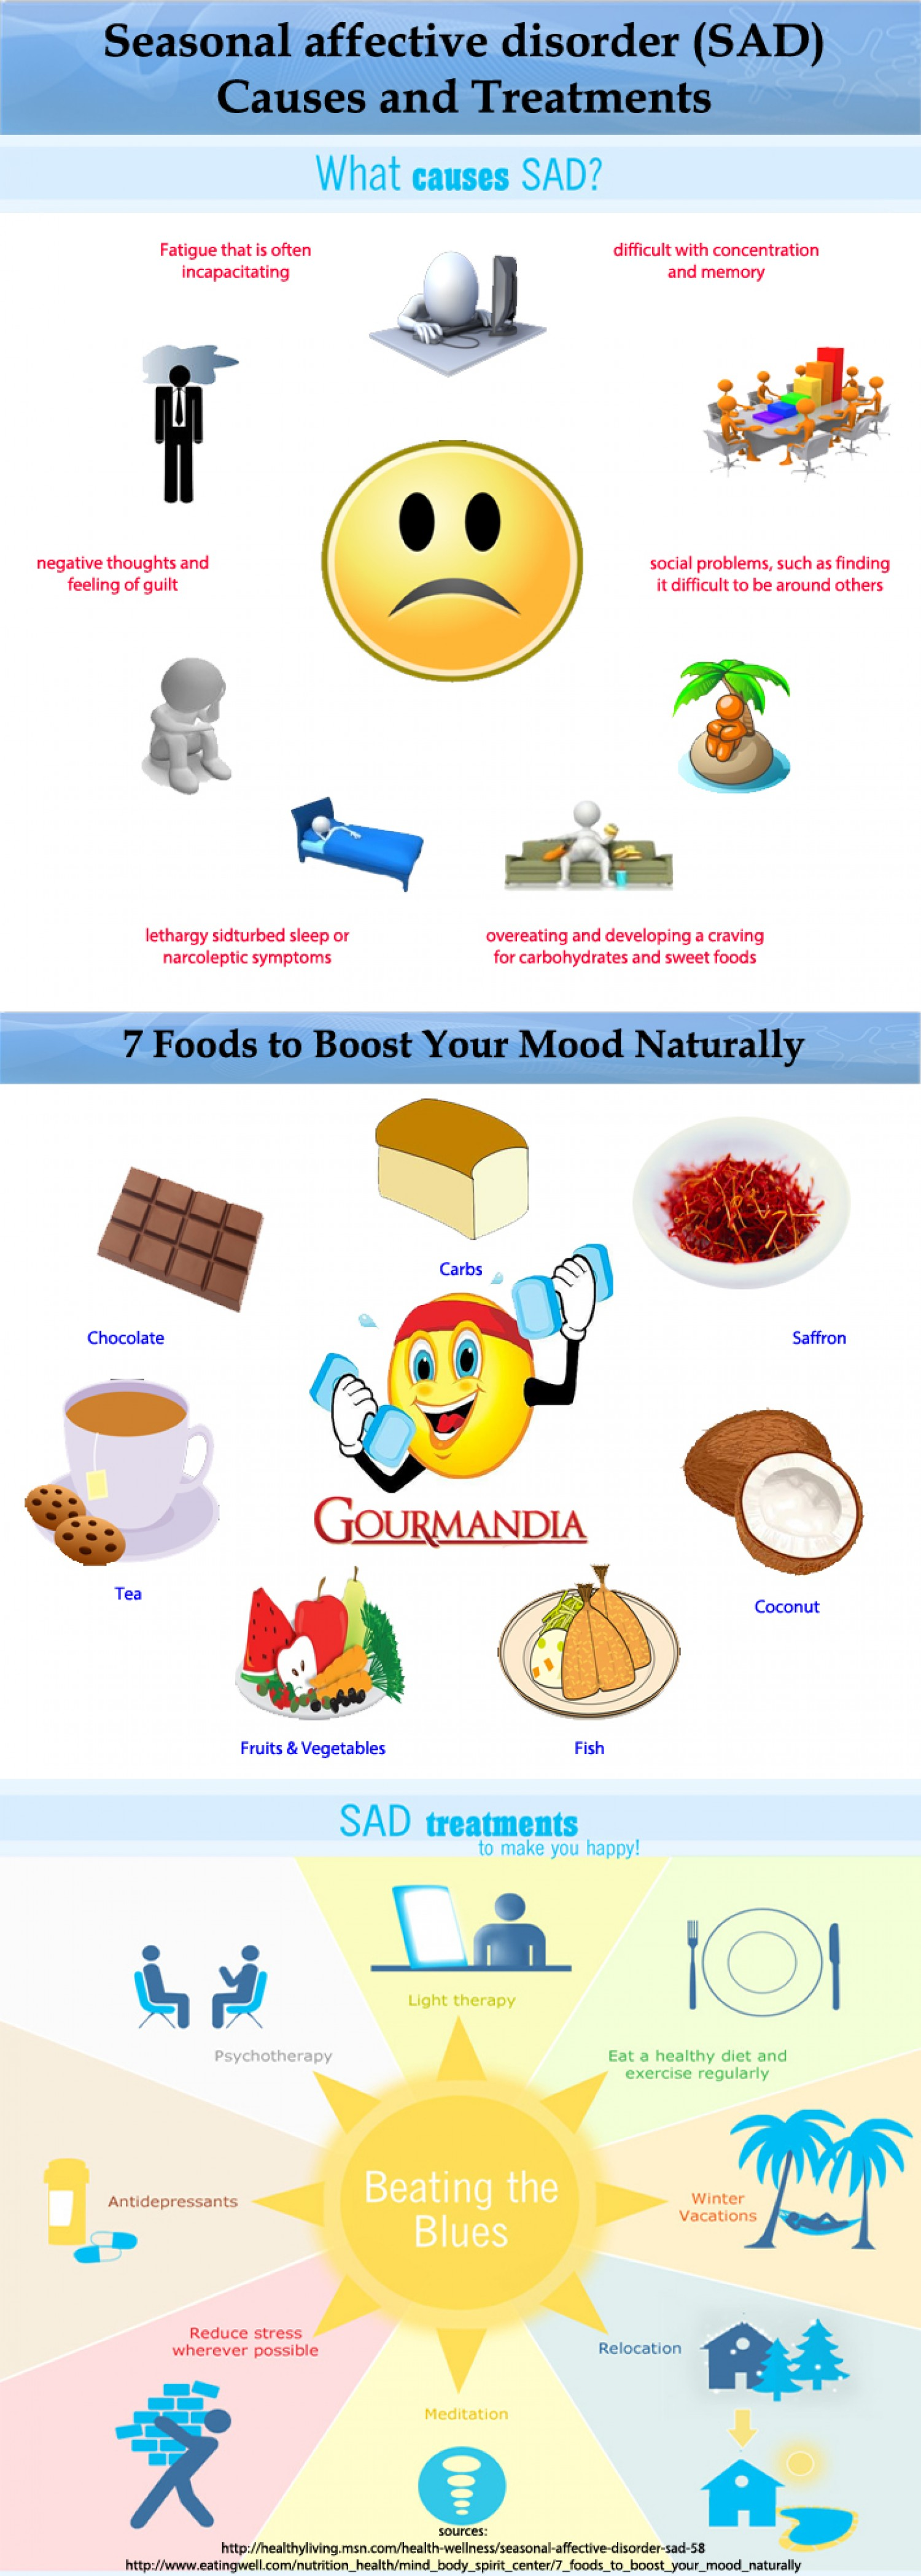 8 Happy Ways to Beat the Winter Blues Infographic